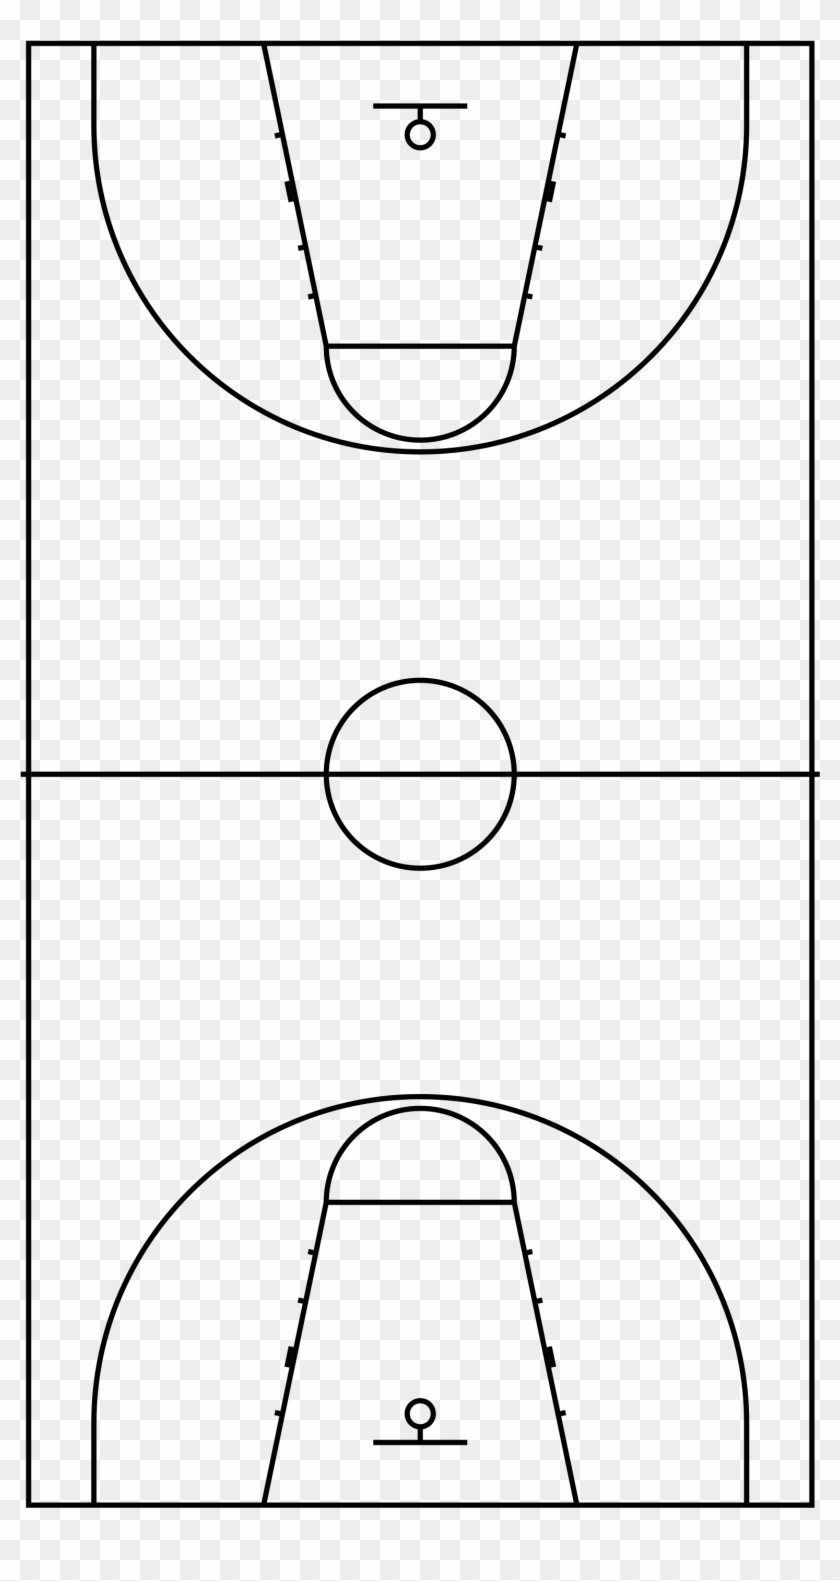 Basketball Court Dimensions No Label.